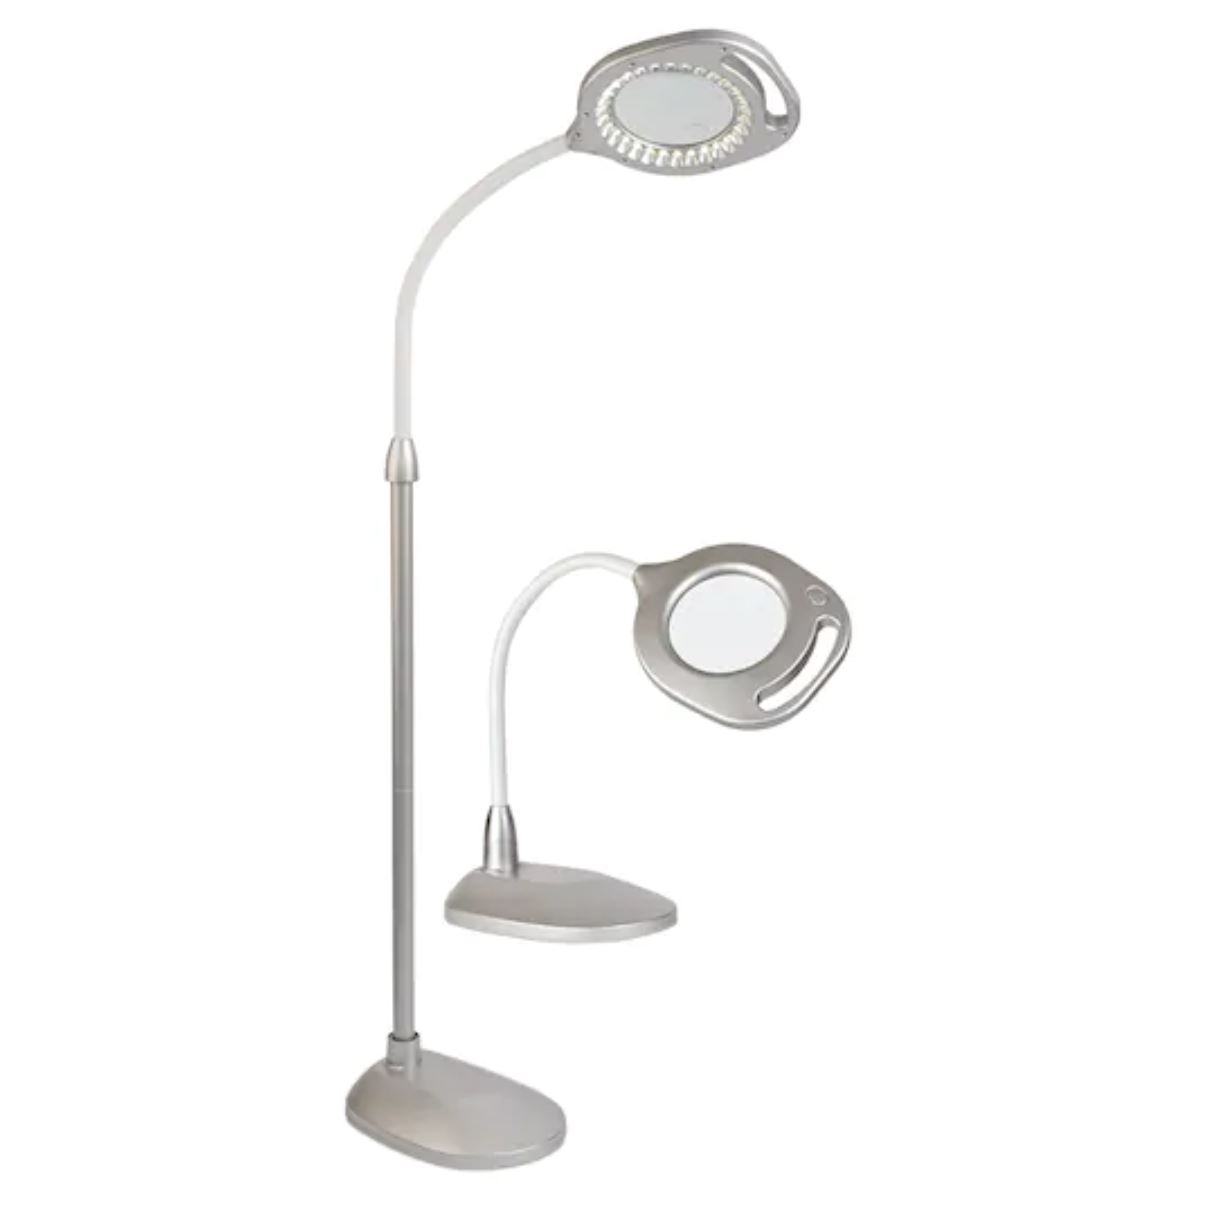 2 in 1 led light ottlite